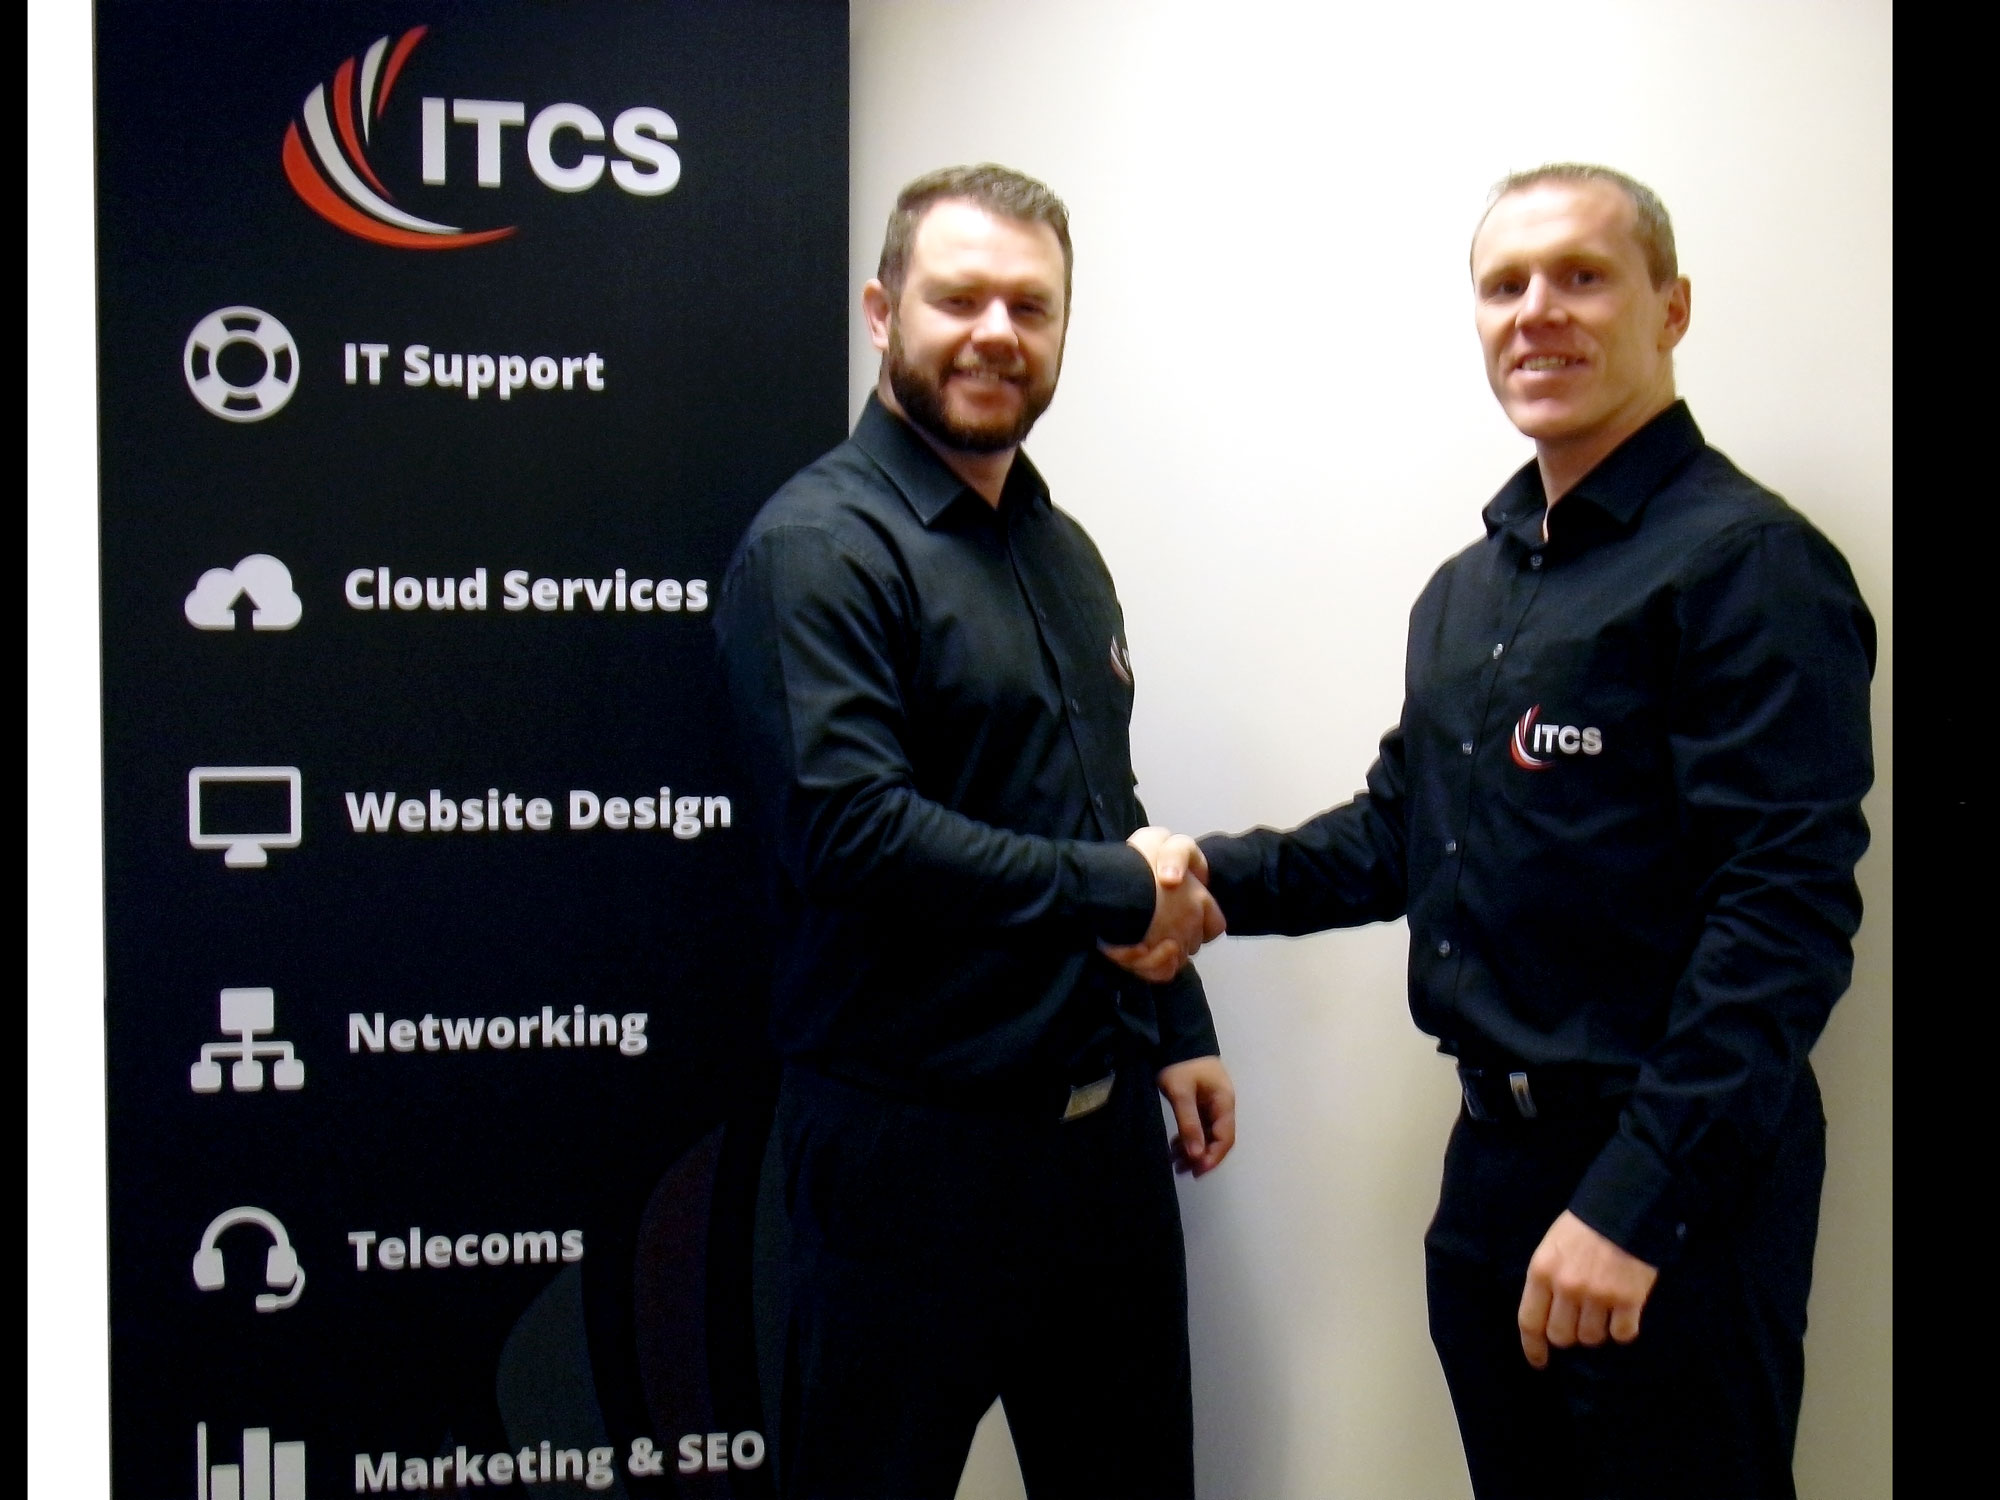 ITCS celebrates a successful 2017 with appointment of new Operations Director